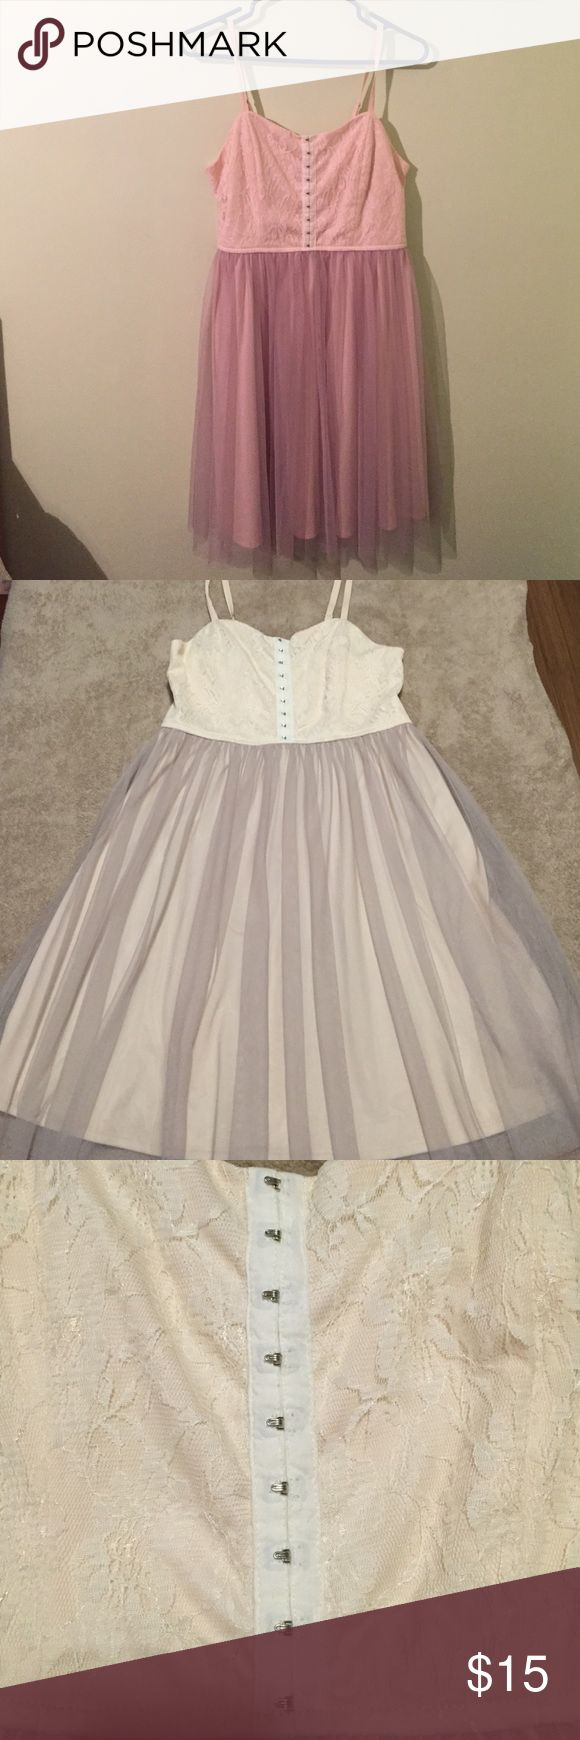 Spaghetti Strap Dress L Xhilaration cream colored spaghetti strapped dress with lacy Corset top and tulle skirt. Excellent condition Dresses